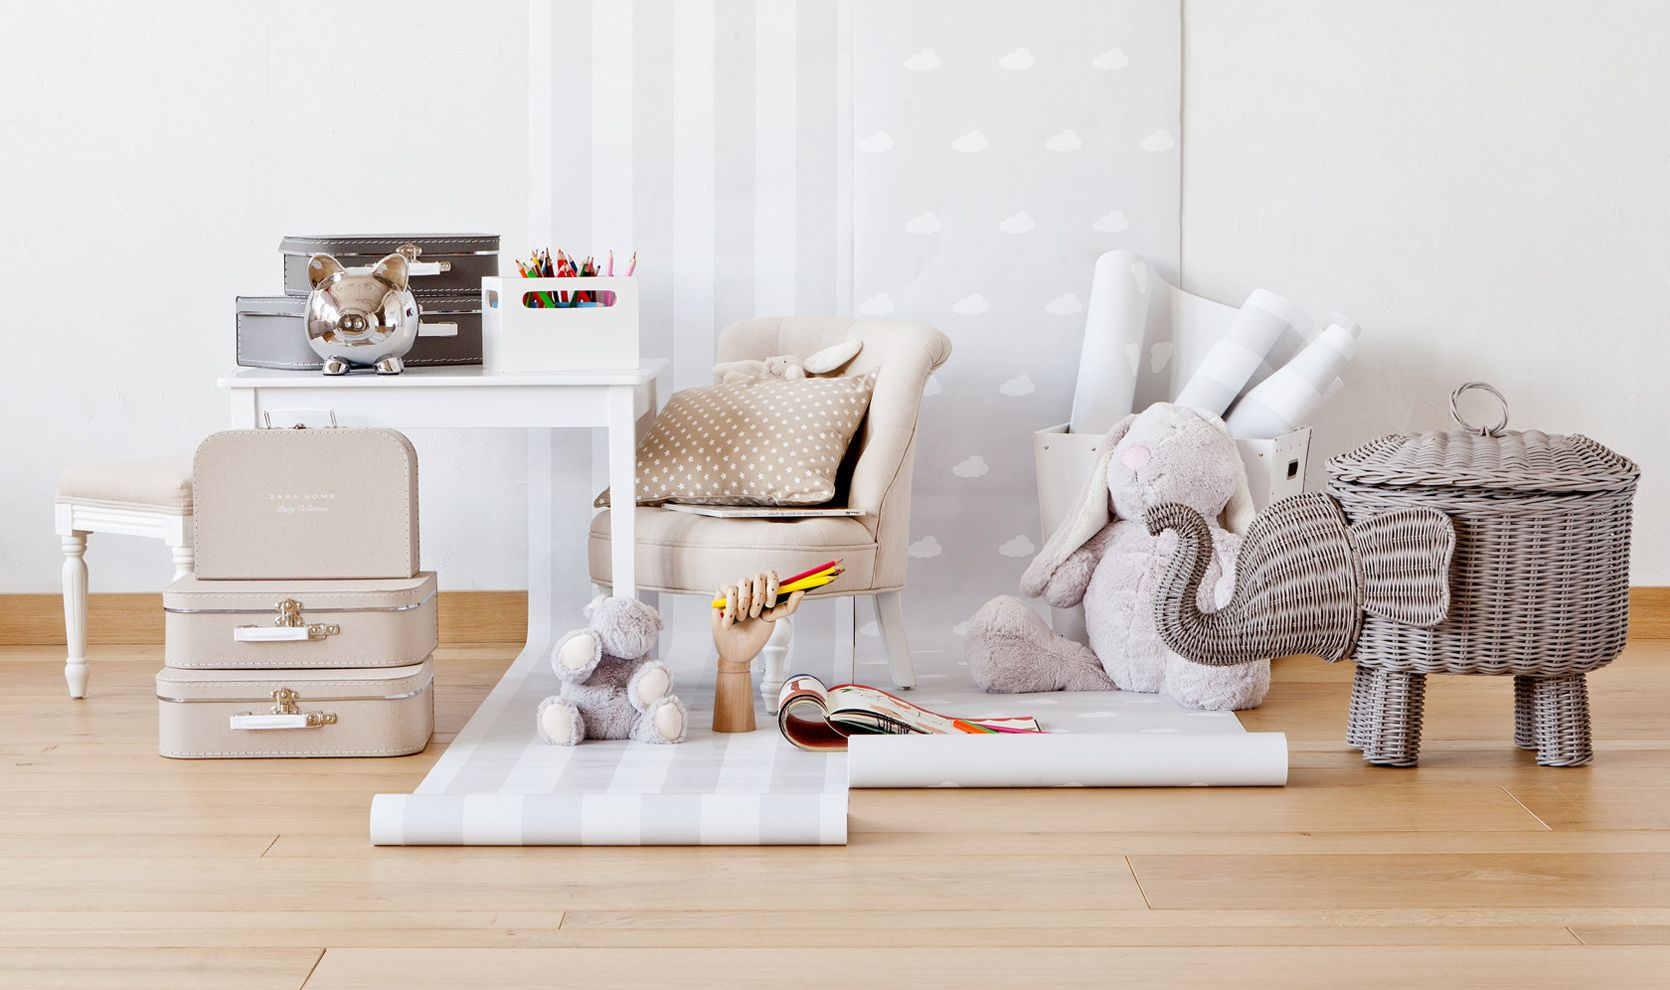 Behang Babykamer Neutraal.Zara Home Netherlands Home Page Kids Room